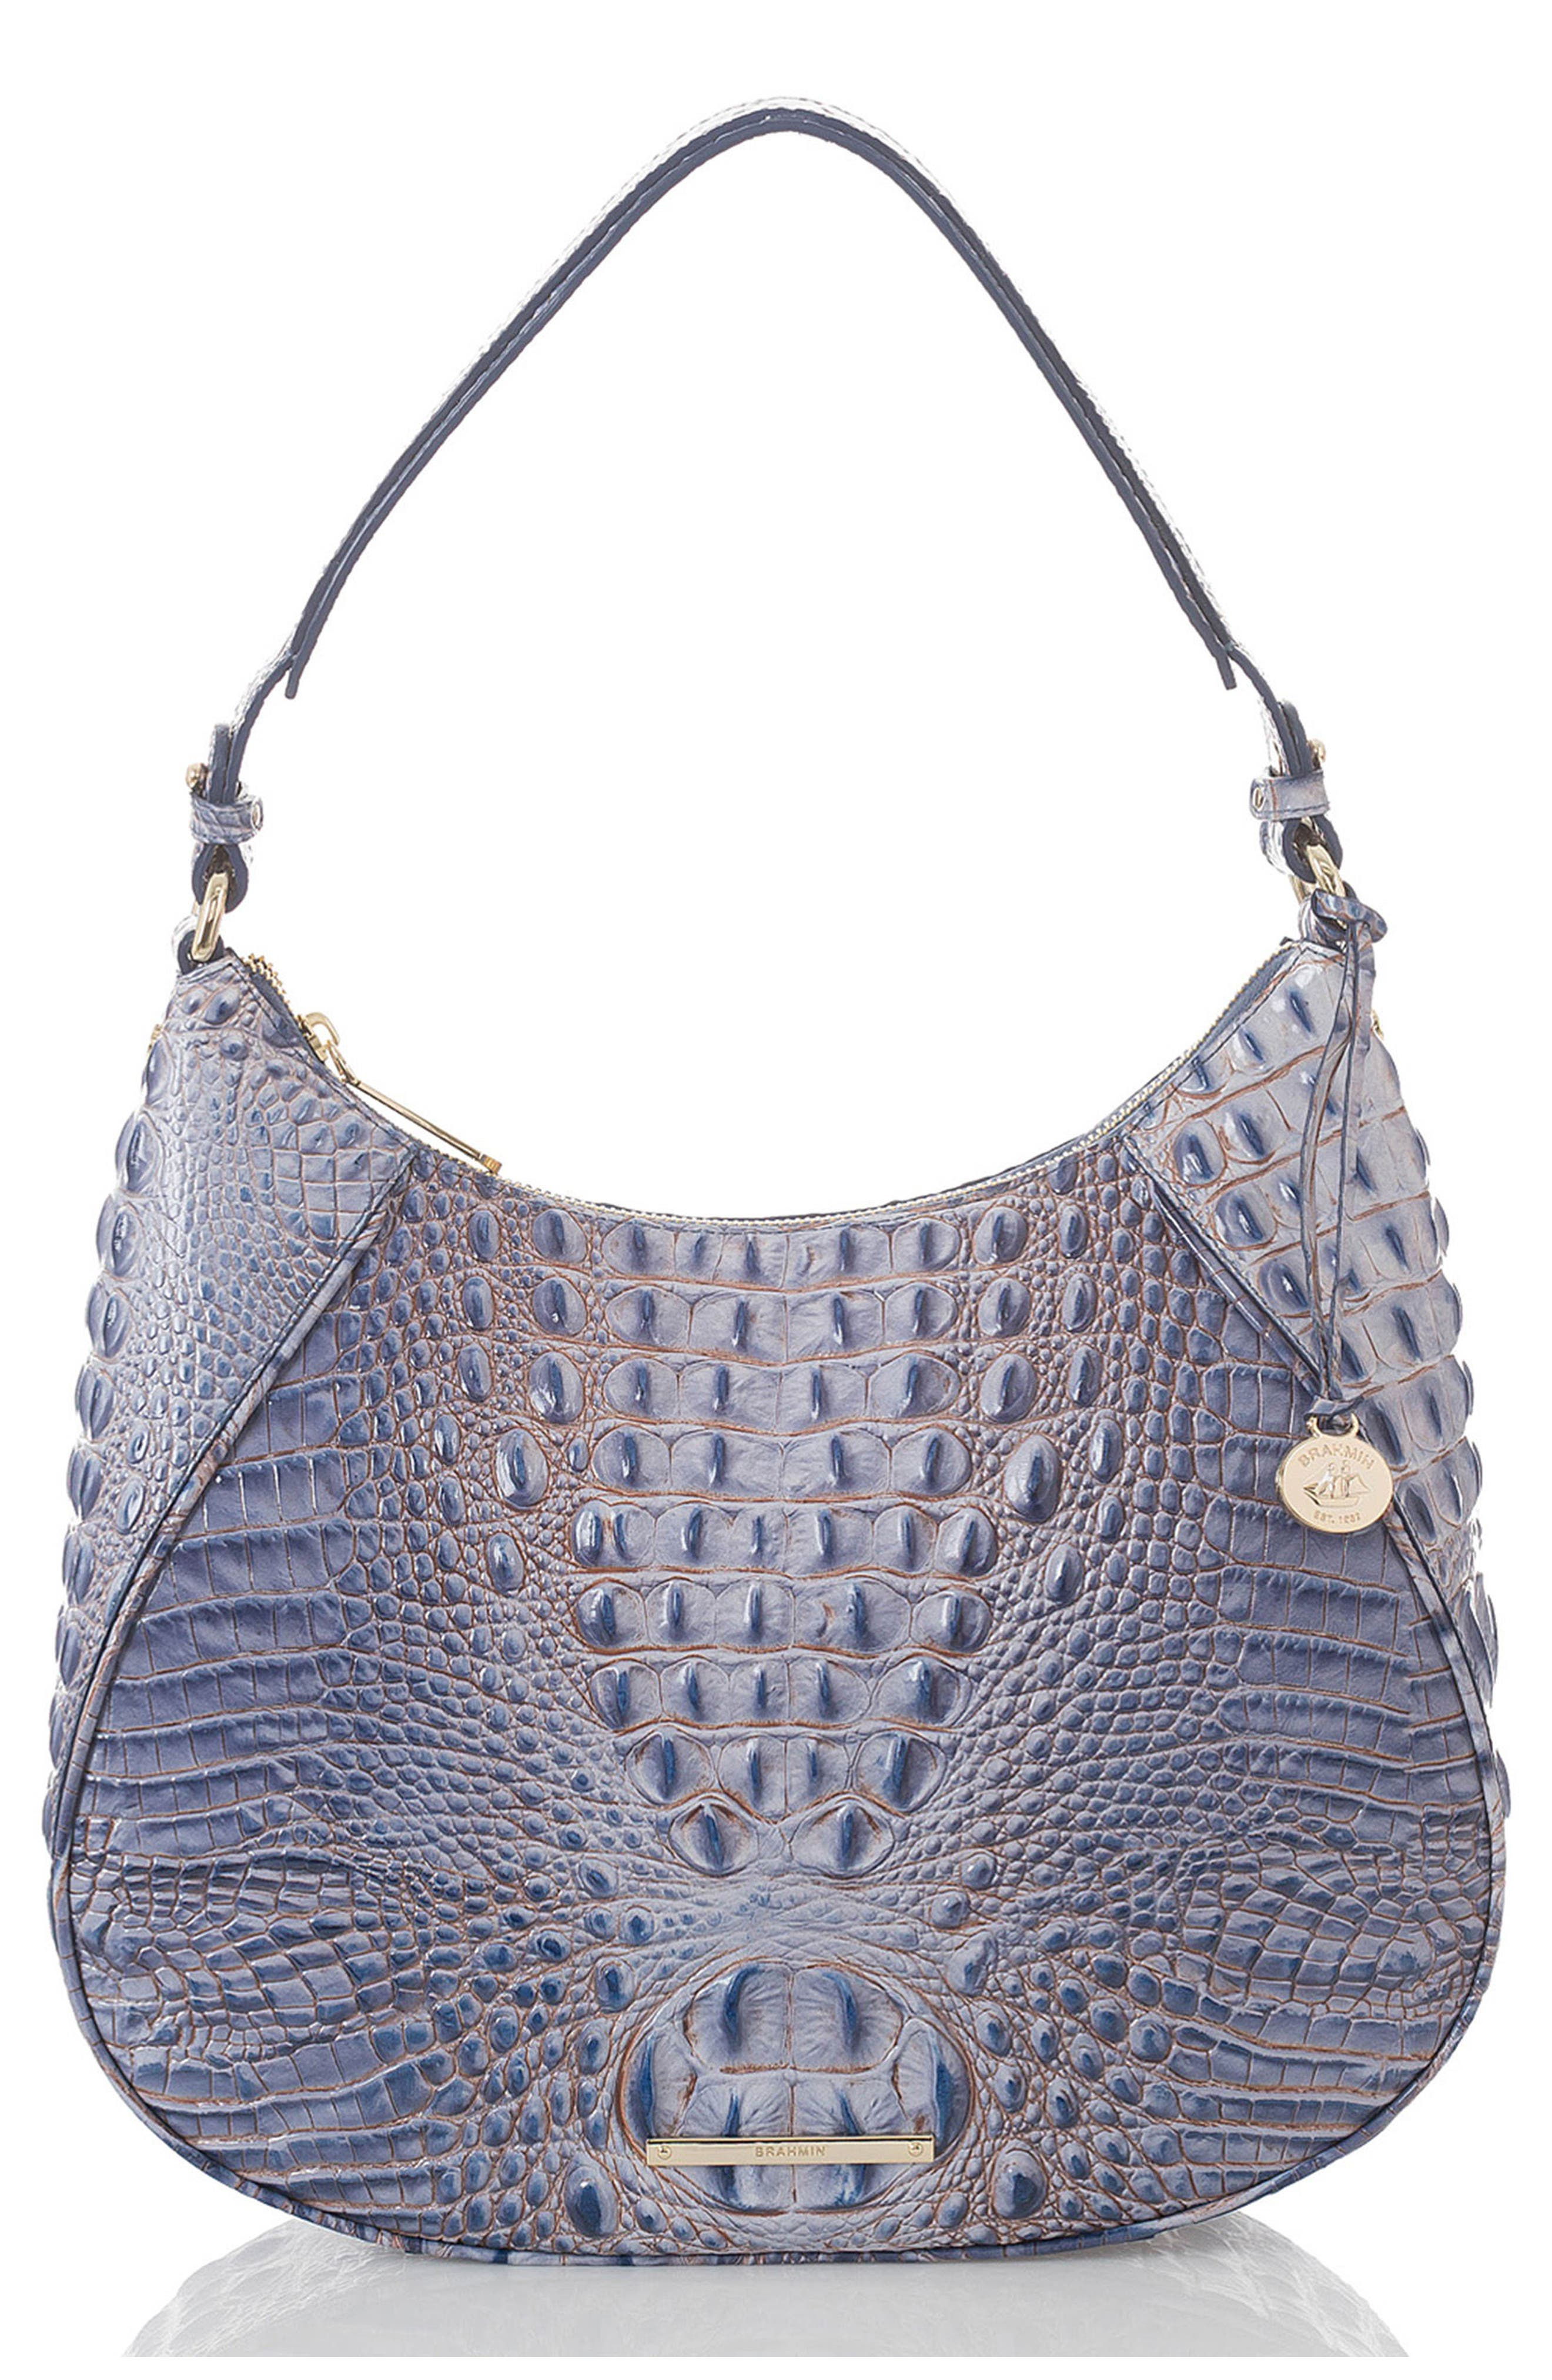 Melbourne Amira Shoulder Bag,                         Main,                         color, Washed Indigo